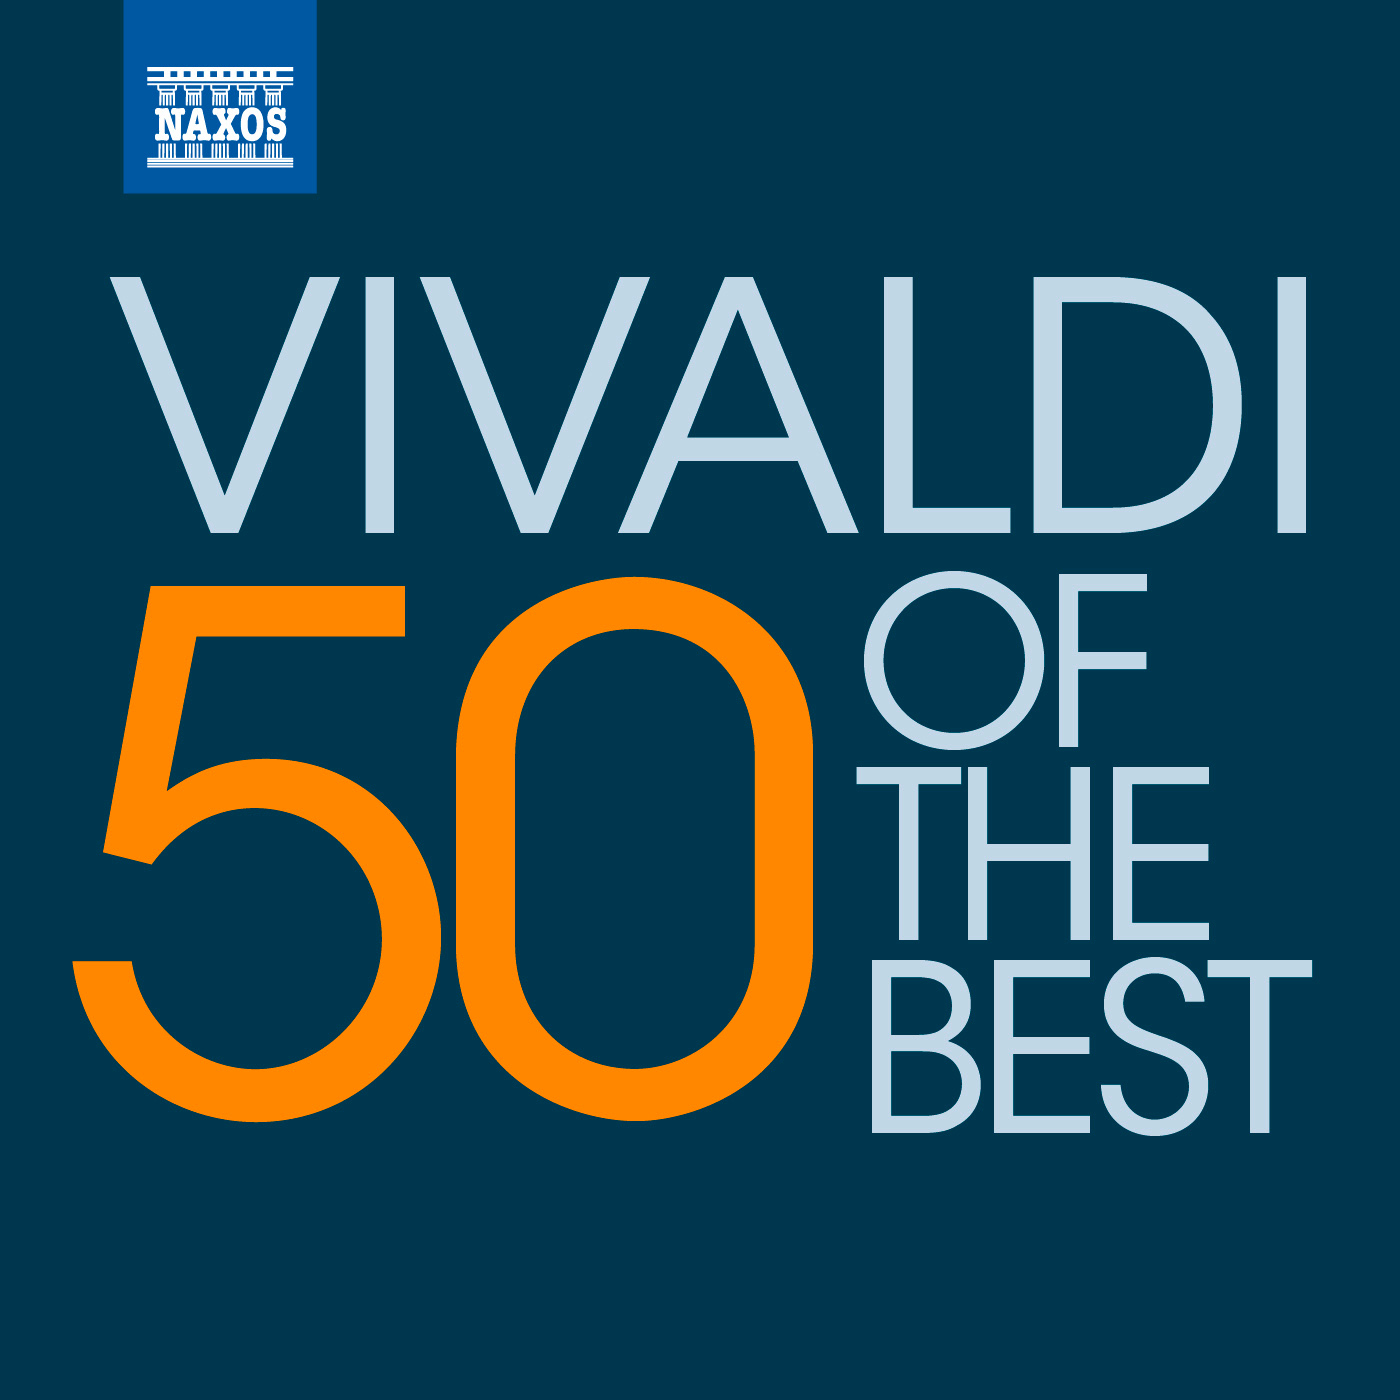 50 of the best: Vivaldi Orchestral & Concertos Classical Naxos